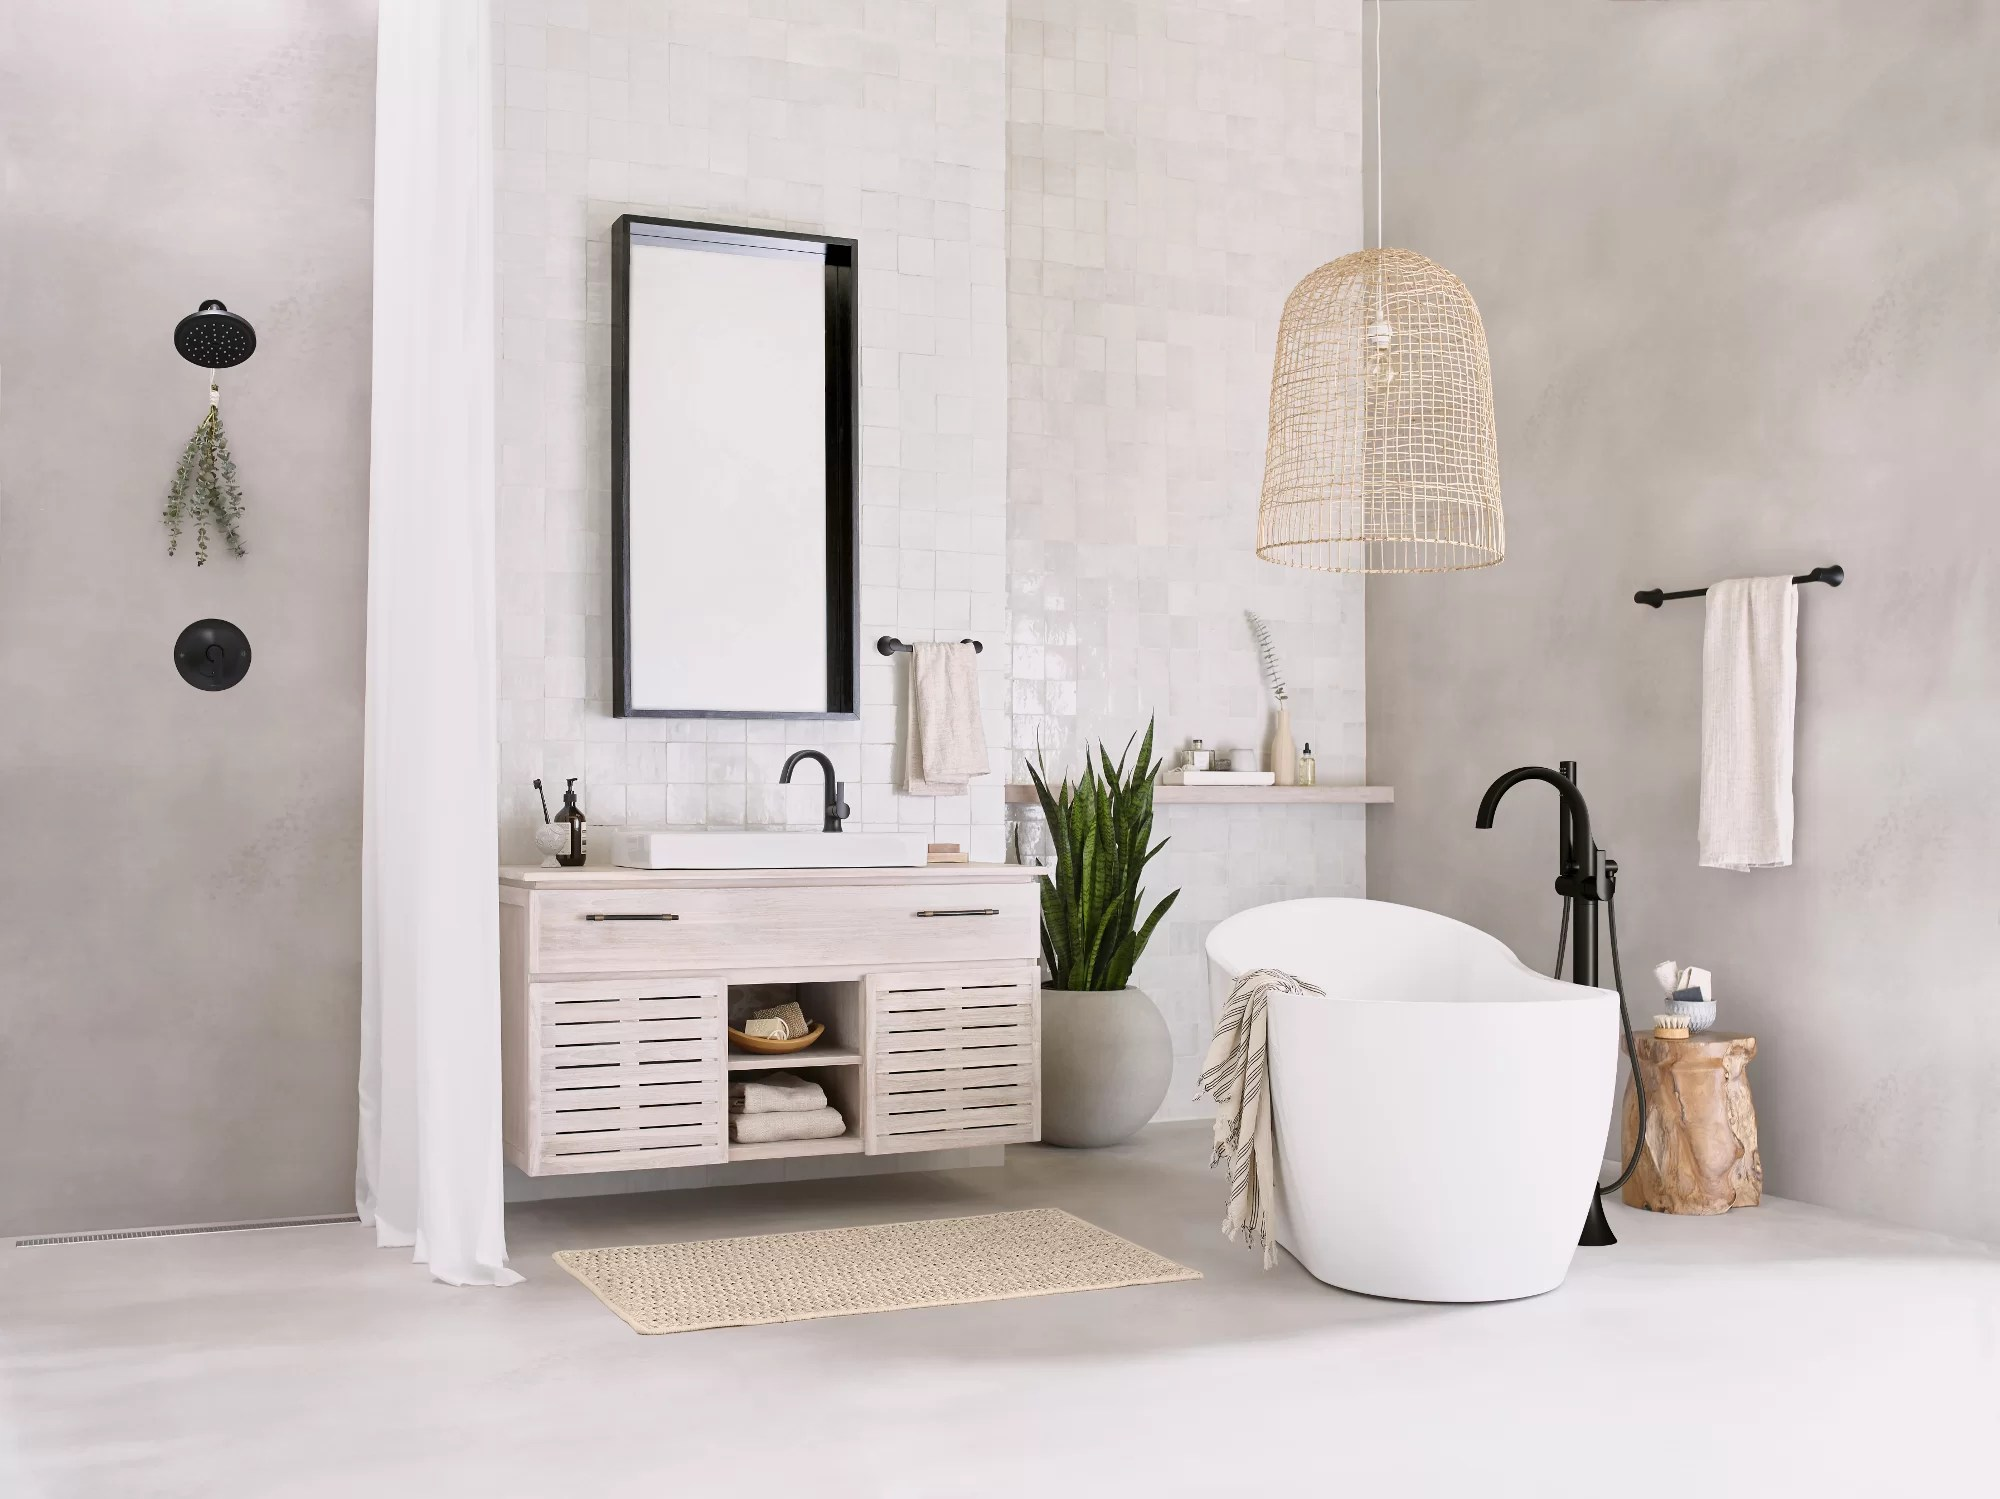 33 Beautiful Bathroom Remodel Ideas With Photos Wayfair